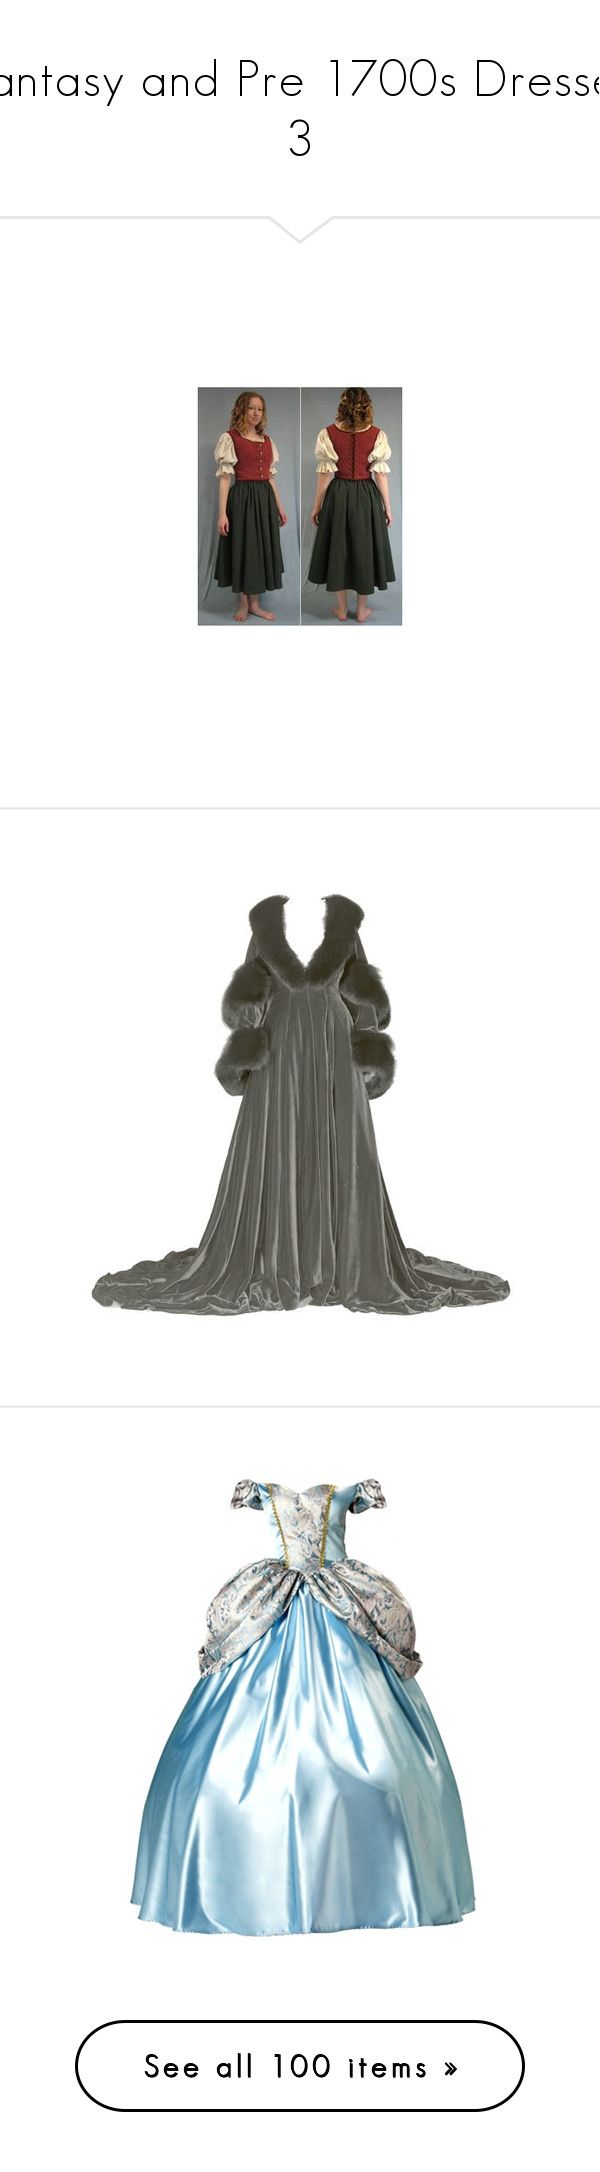 """""""Fantasy and Pre 1700s Dresses 3"""" by ltspork ❤ liked on Polyvore featuring costumes, dresses, gowns, long dresses, cinderella, disney, blue gown, blue ball gown, blue evening gown and blue color dress"""